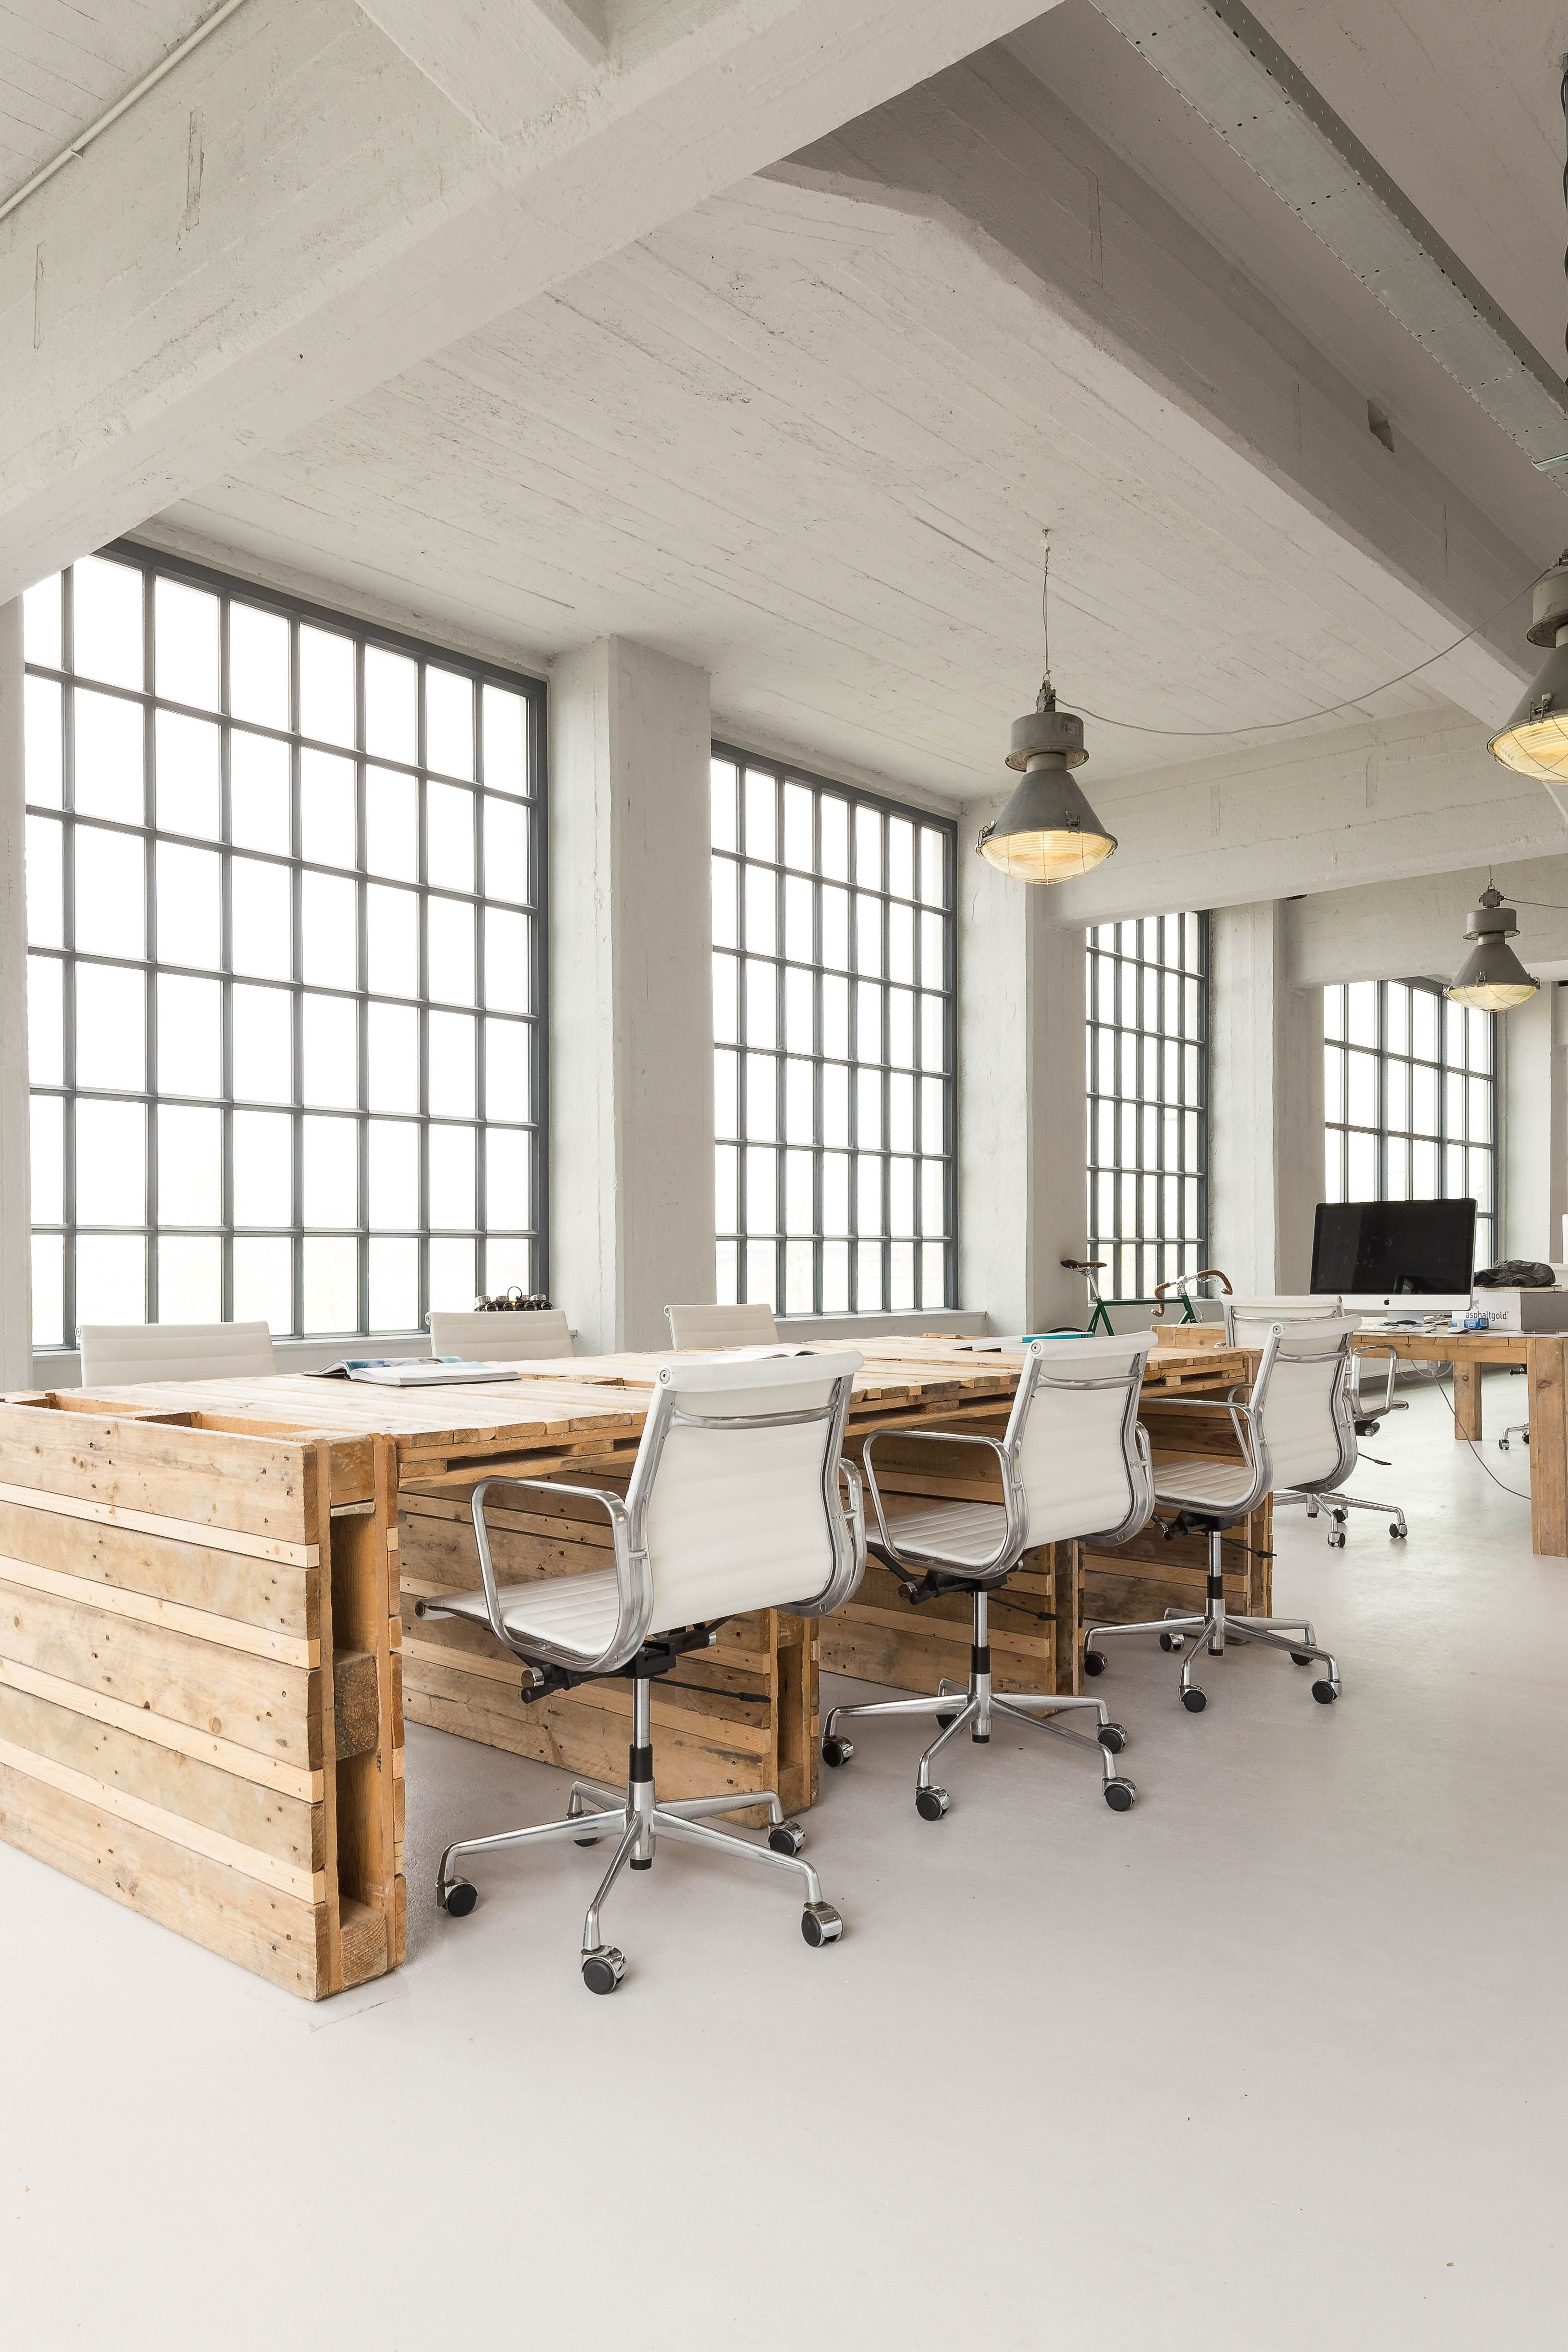 Office Design Train Your Brain With The Best Light You Can Get